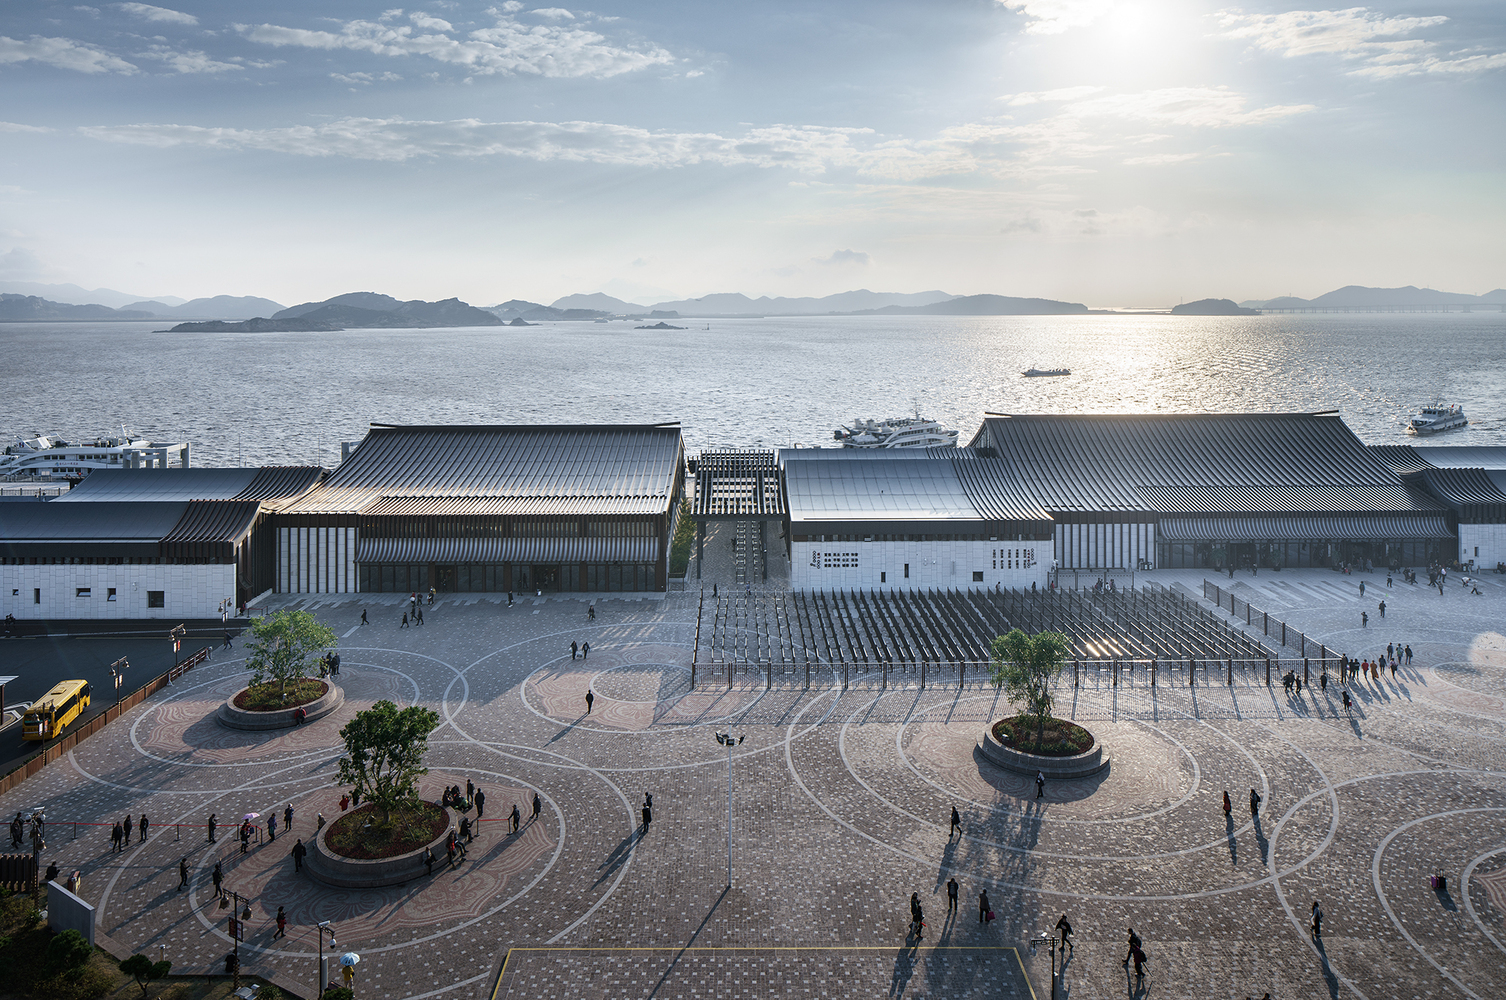 Prix Versailles 2021: World Selections for Airports, Campuses, Passenger Stations and Sports announced